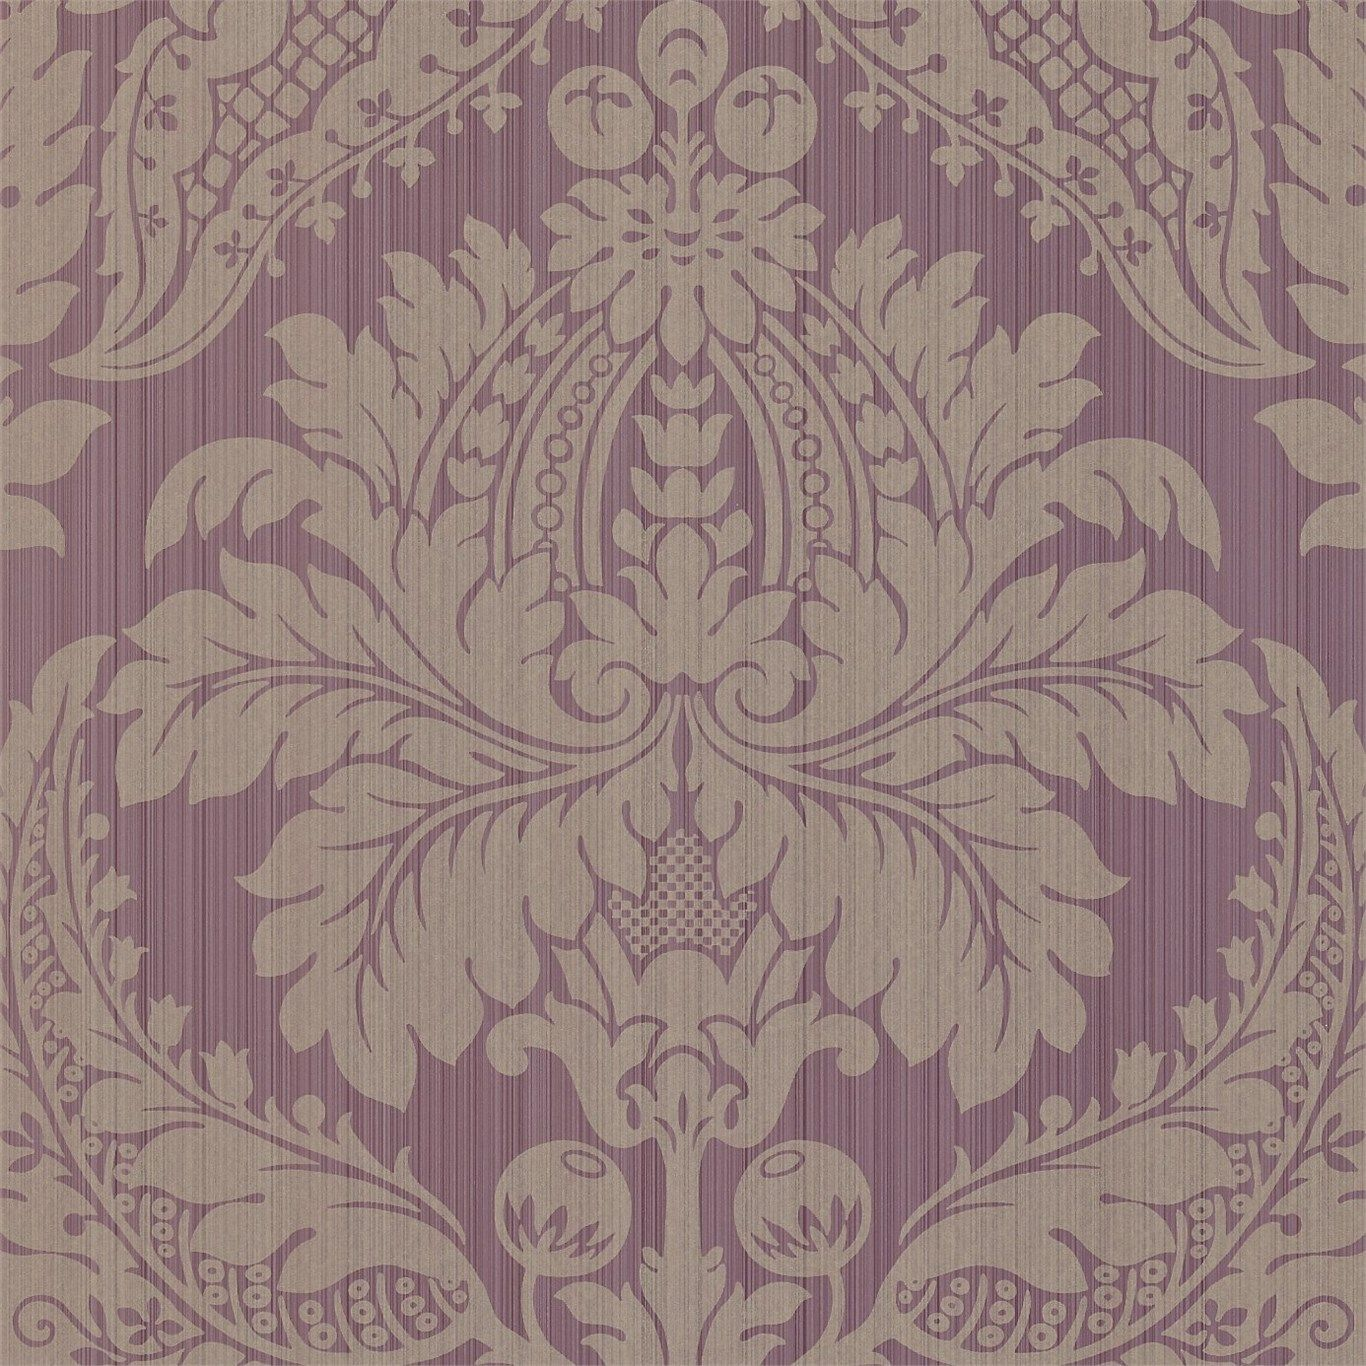 Zoffany - Luxury Fabric and Wallpaper Design | Products | British/UK Fabric and Wallpapers | Malmaison (ZSDA04006) | Strie Damask Wallpapers